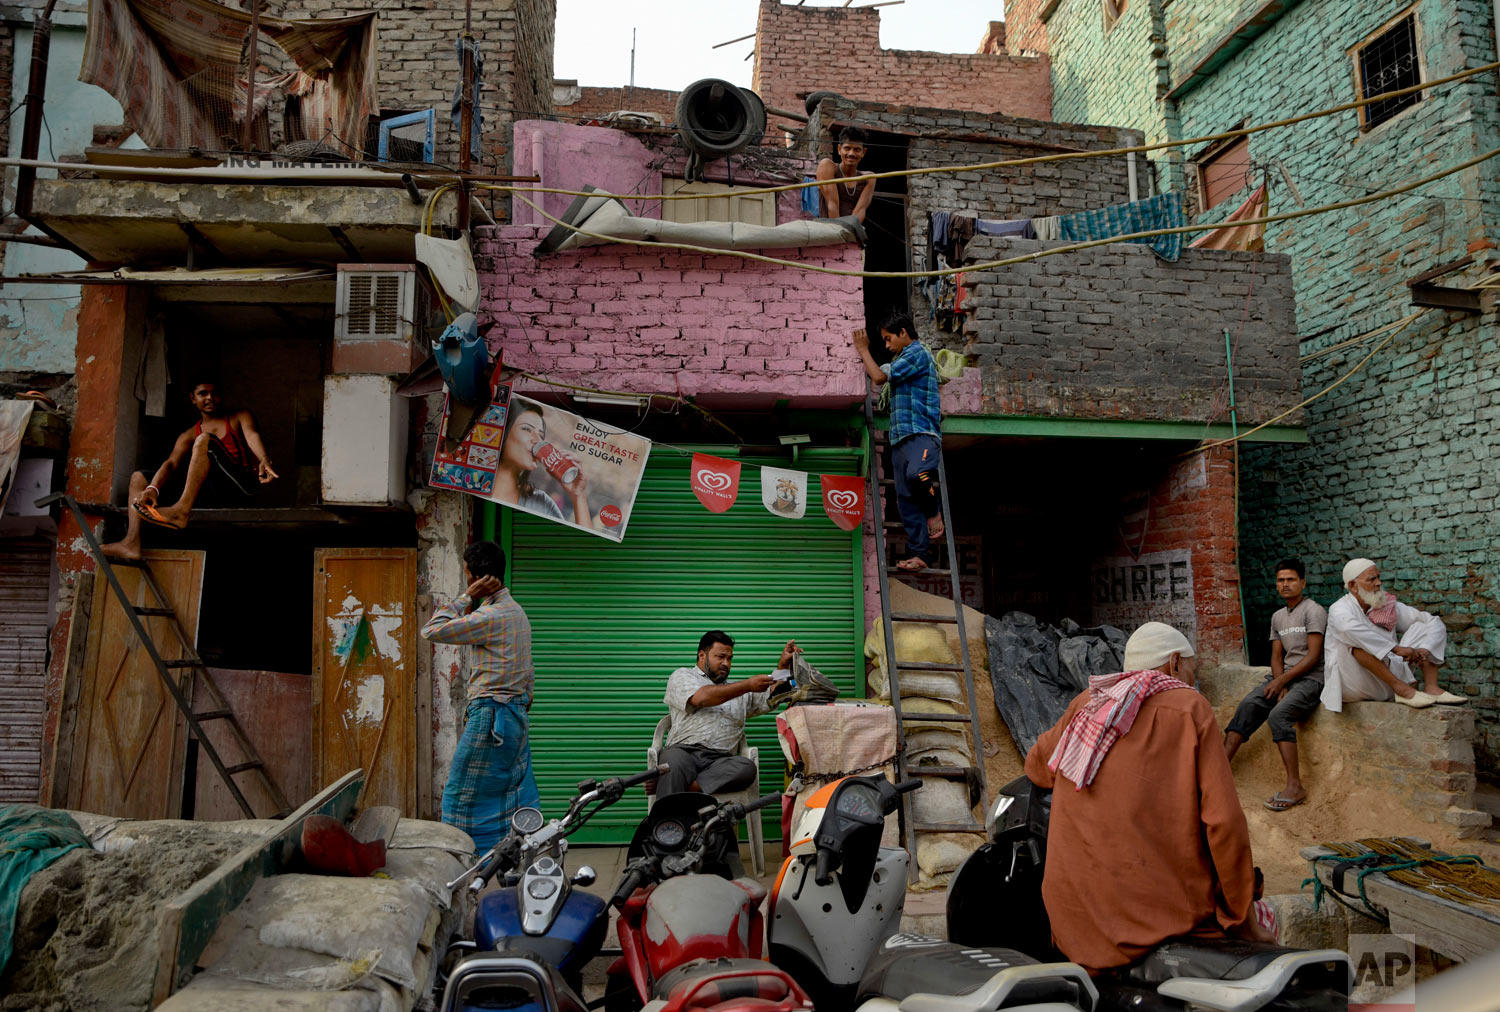 Migrant workers from eastern India prepare themselves for the day outside their cramped accommodations in the old quarter of New Delhi, India, Wednesday, Oct. 10, 2018. Some 800 million people in the country live in poverty, many of them migrating to big cities in search of a livelihood. (AP Photo/R S Iyer)